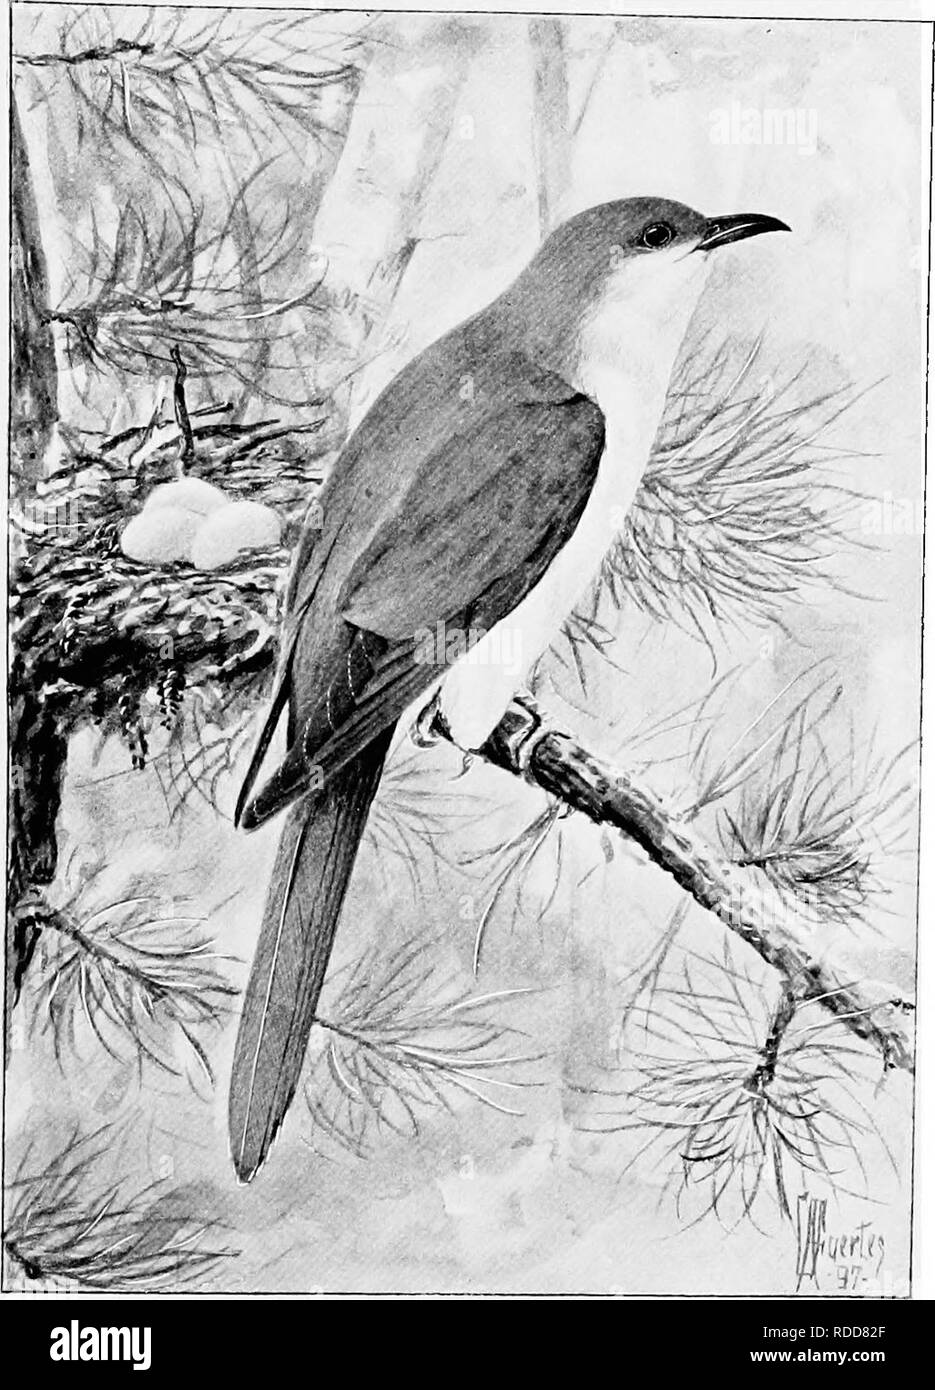 . Song birds and water fowl. Birds; Water birds. CUCKOO The poor cuckoos find themselves in a dilemma that baffles instinct itself (p. 106).. Please note that these images are extracted from scanned page images that may have been digitally enhanced for readability - coloration and appearance of these illustrations may not perfectly resemble the original work.. Parkhurst, Howard Elmore, 1848-1916; Fuertes, Louis Agassiz, 1874-1927. New York, C. Scribner's Sons - Stock Image